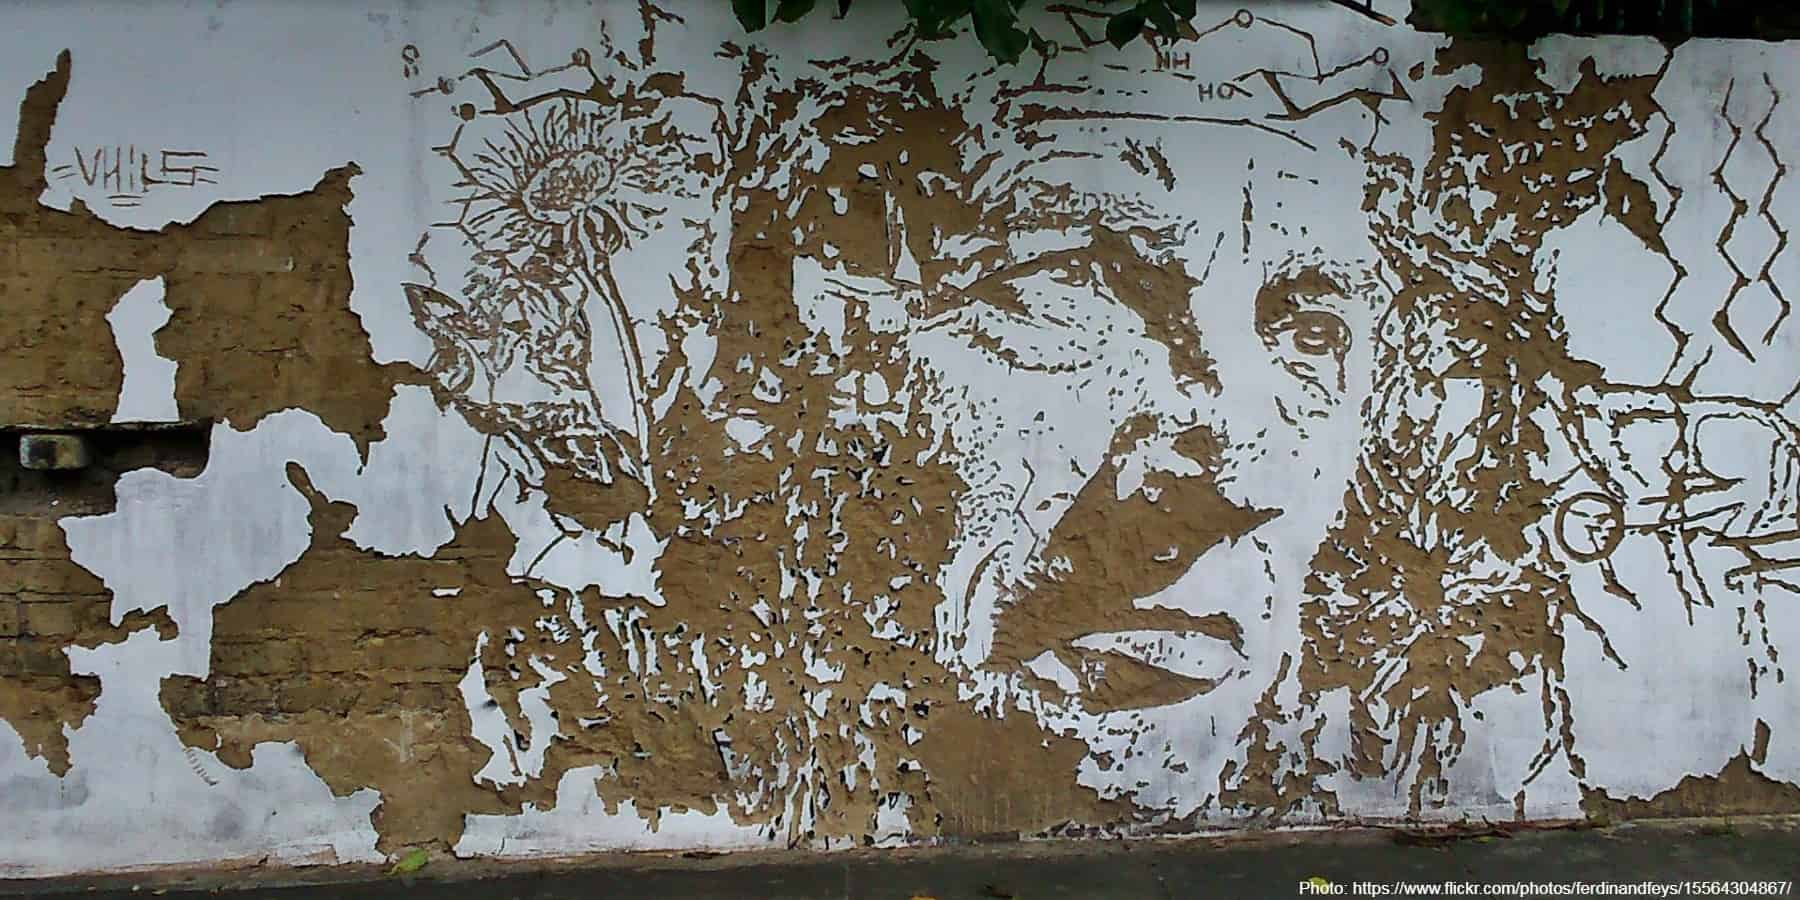 uild to last Alexandre Farto = Vhils